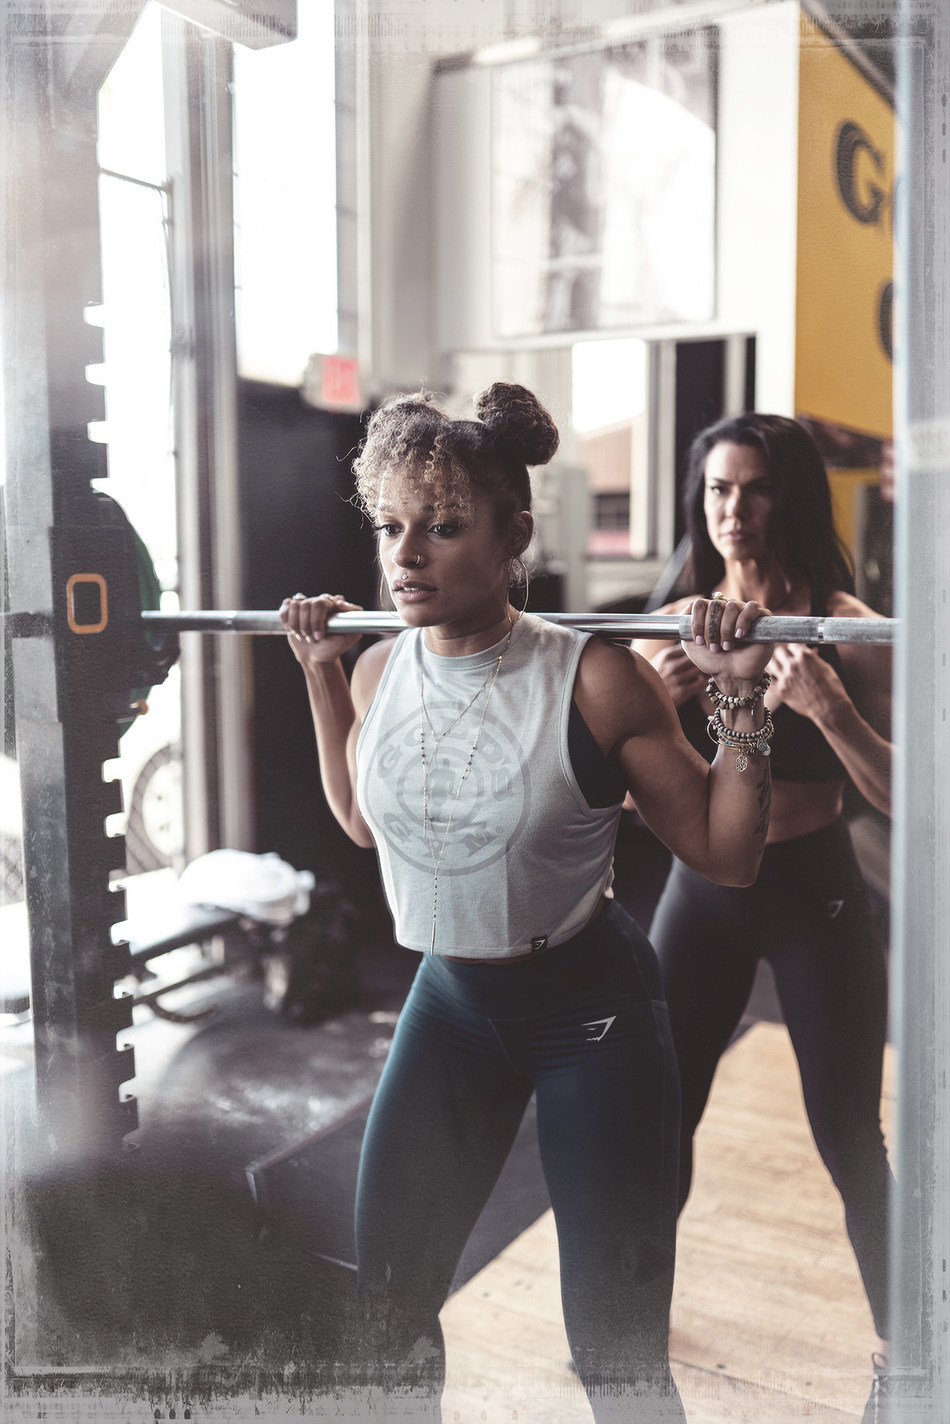 Gold's Gym and Gymshark limited-edition performance wear collection available beginning June 1.